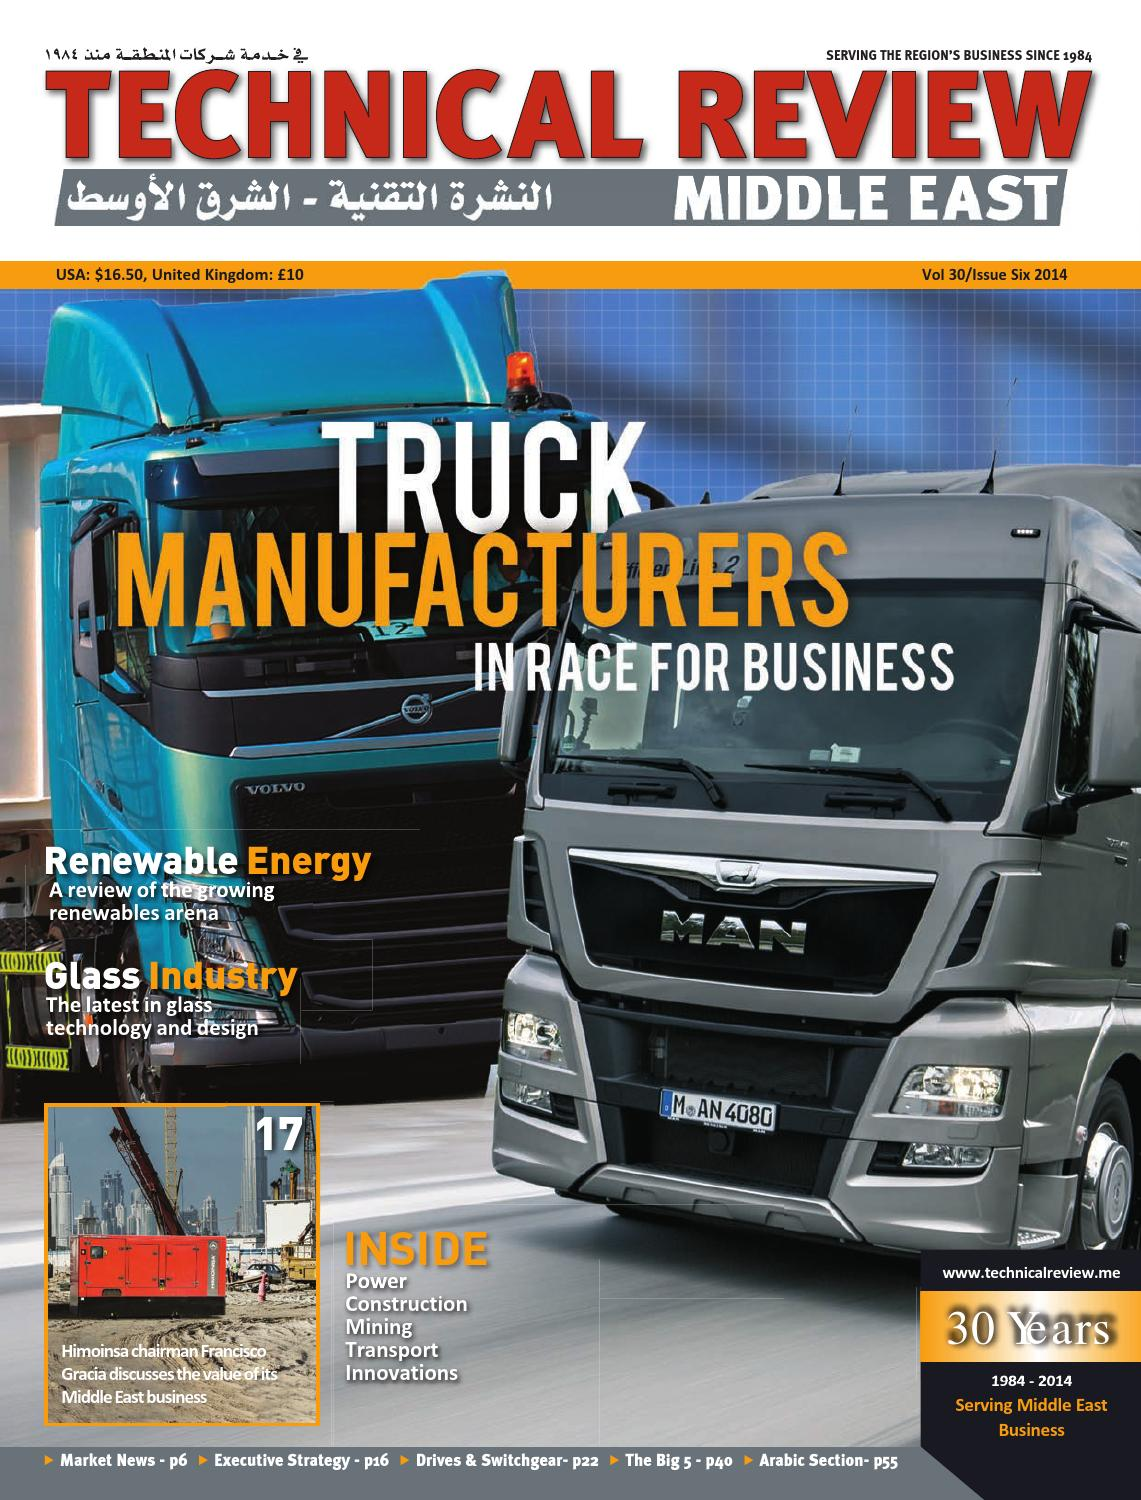 Technical Review Middle East 6 2014 by Alain Charles Publishing - issuu